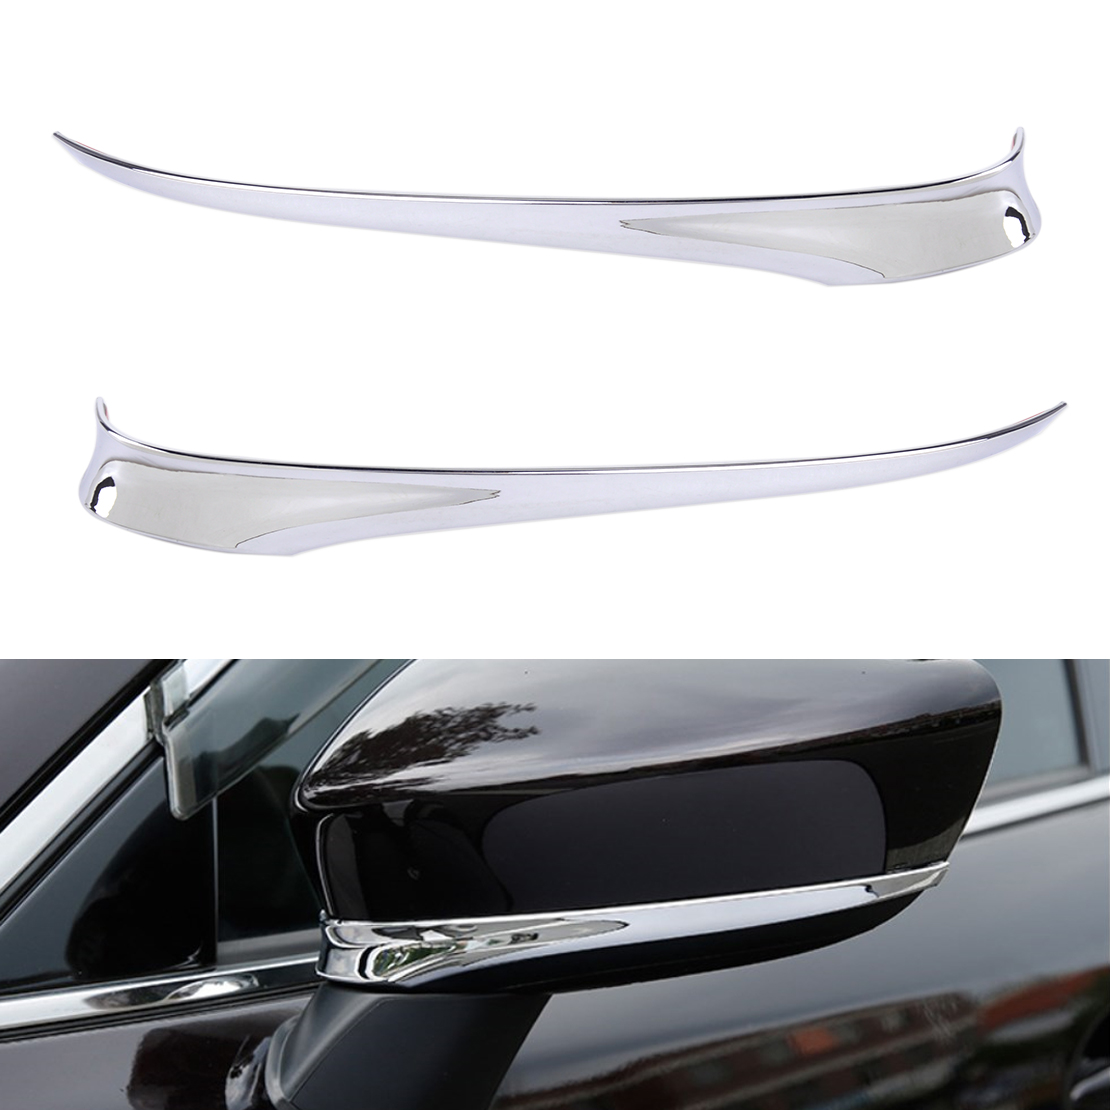 beler New Chrome Plated ABS Car Rearview Side Mirror Cover Trim Stipe Strip Fit for Mazda 6 Atenza 2014 2015 2016 2017 al ko hwa 1300 f